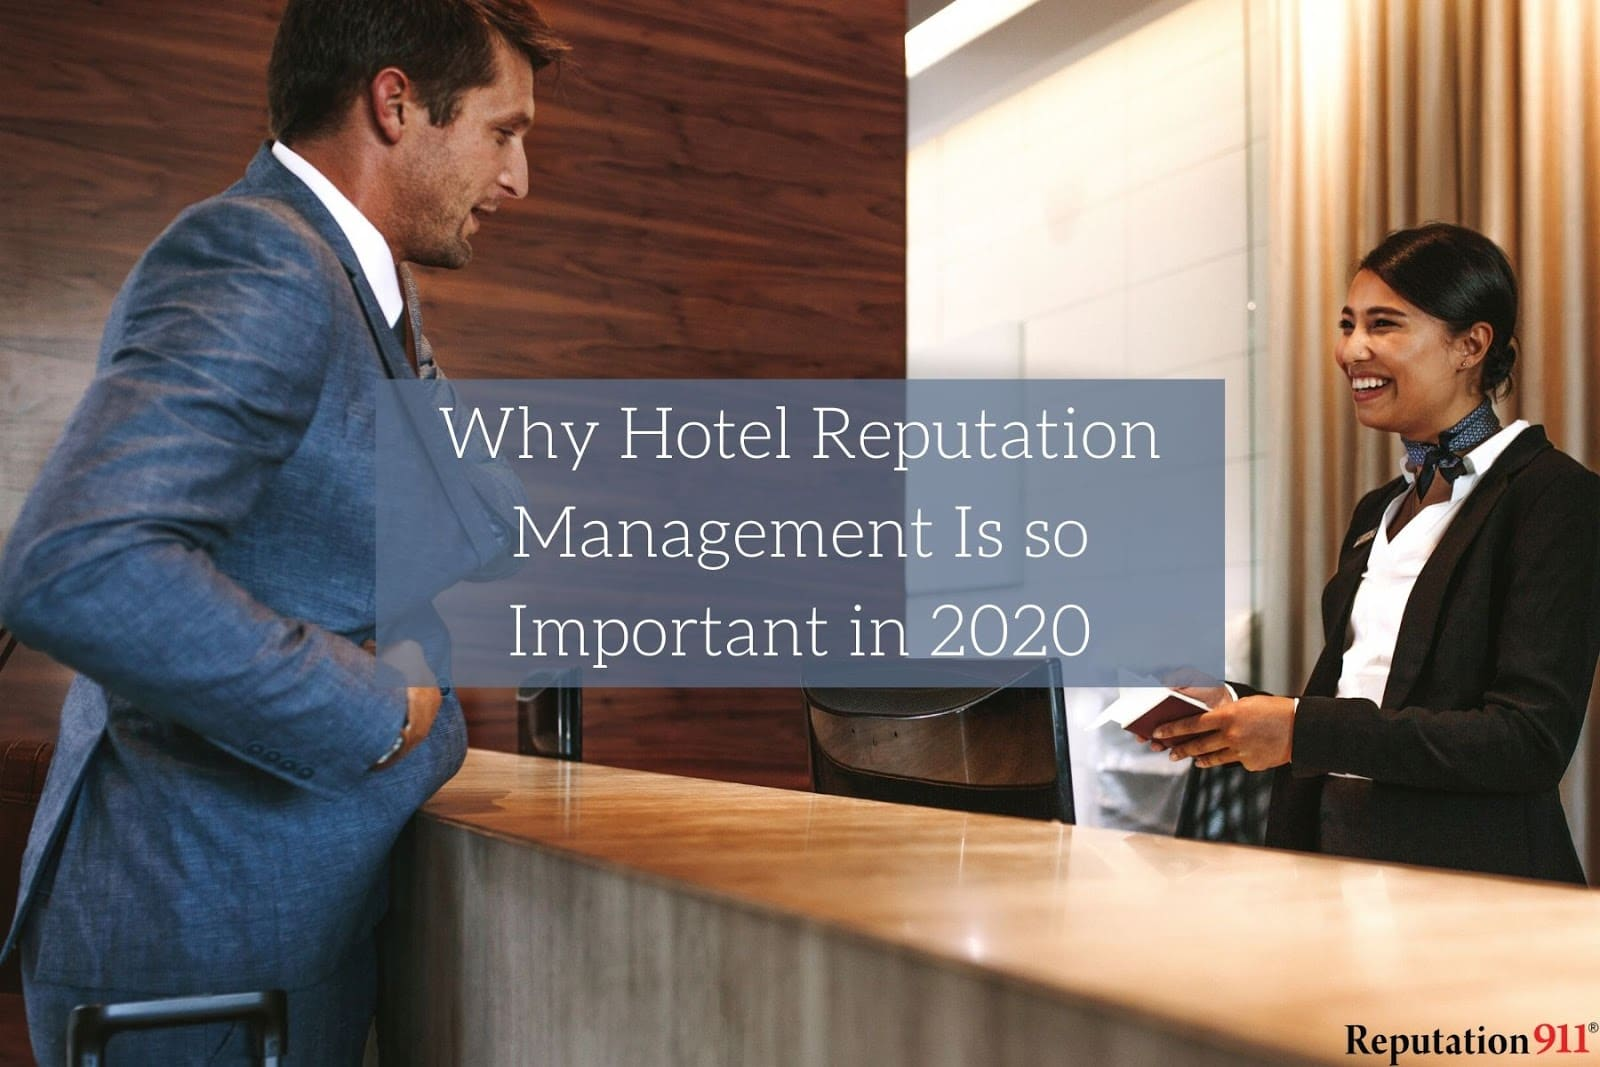 Why Hotel Reputation Management Is so Important in 2020